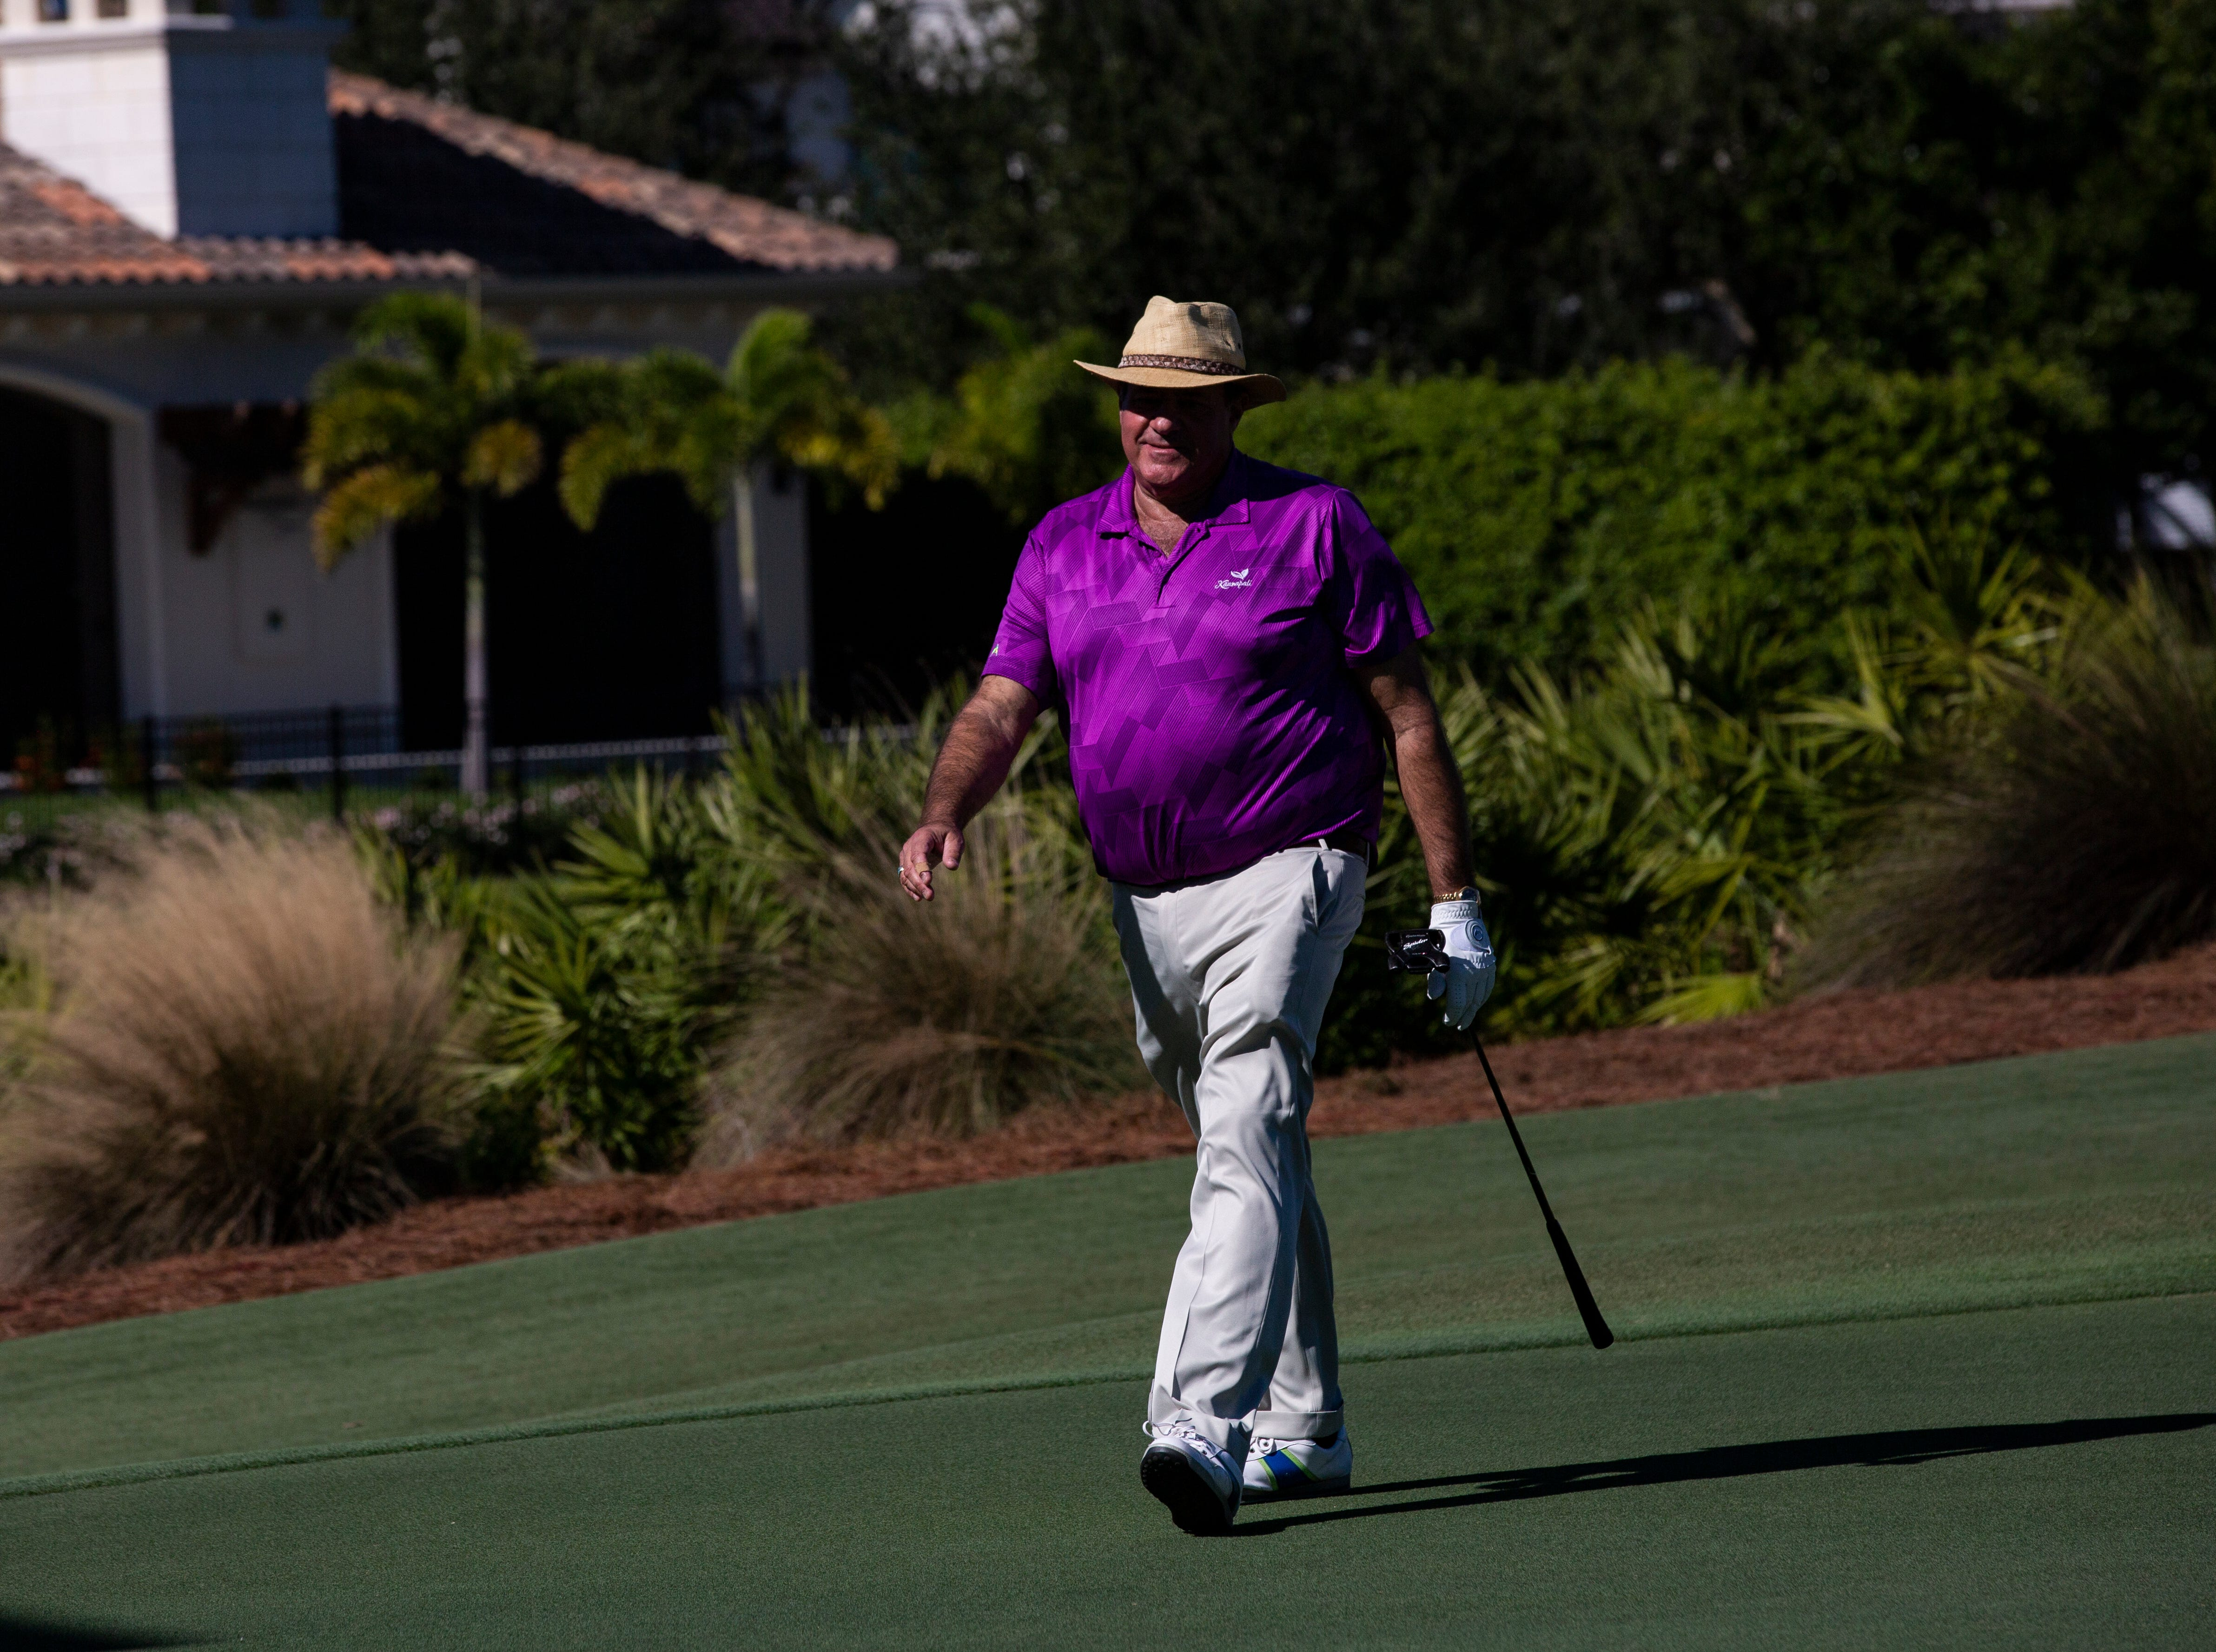 Famous American sportscaster, Chris Berman, prepares to putt the ball during the 30th annual QBE Shootout Pro - Amateur round two, on Thursday, Dec. 6, 2018, at Tiburón Golf Club in Naples. Berman was places with Tony Finau's group for the second round.